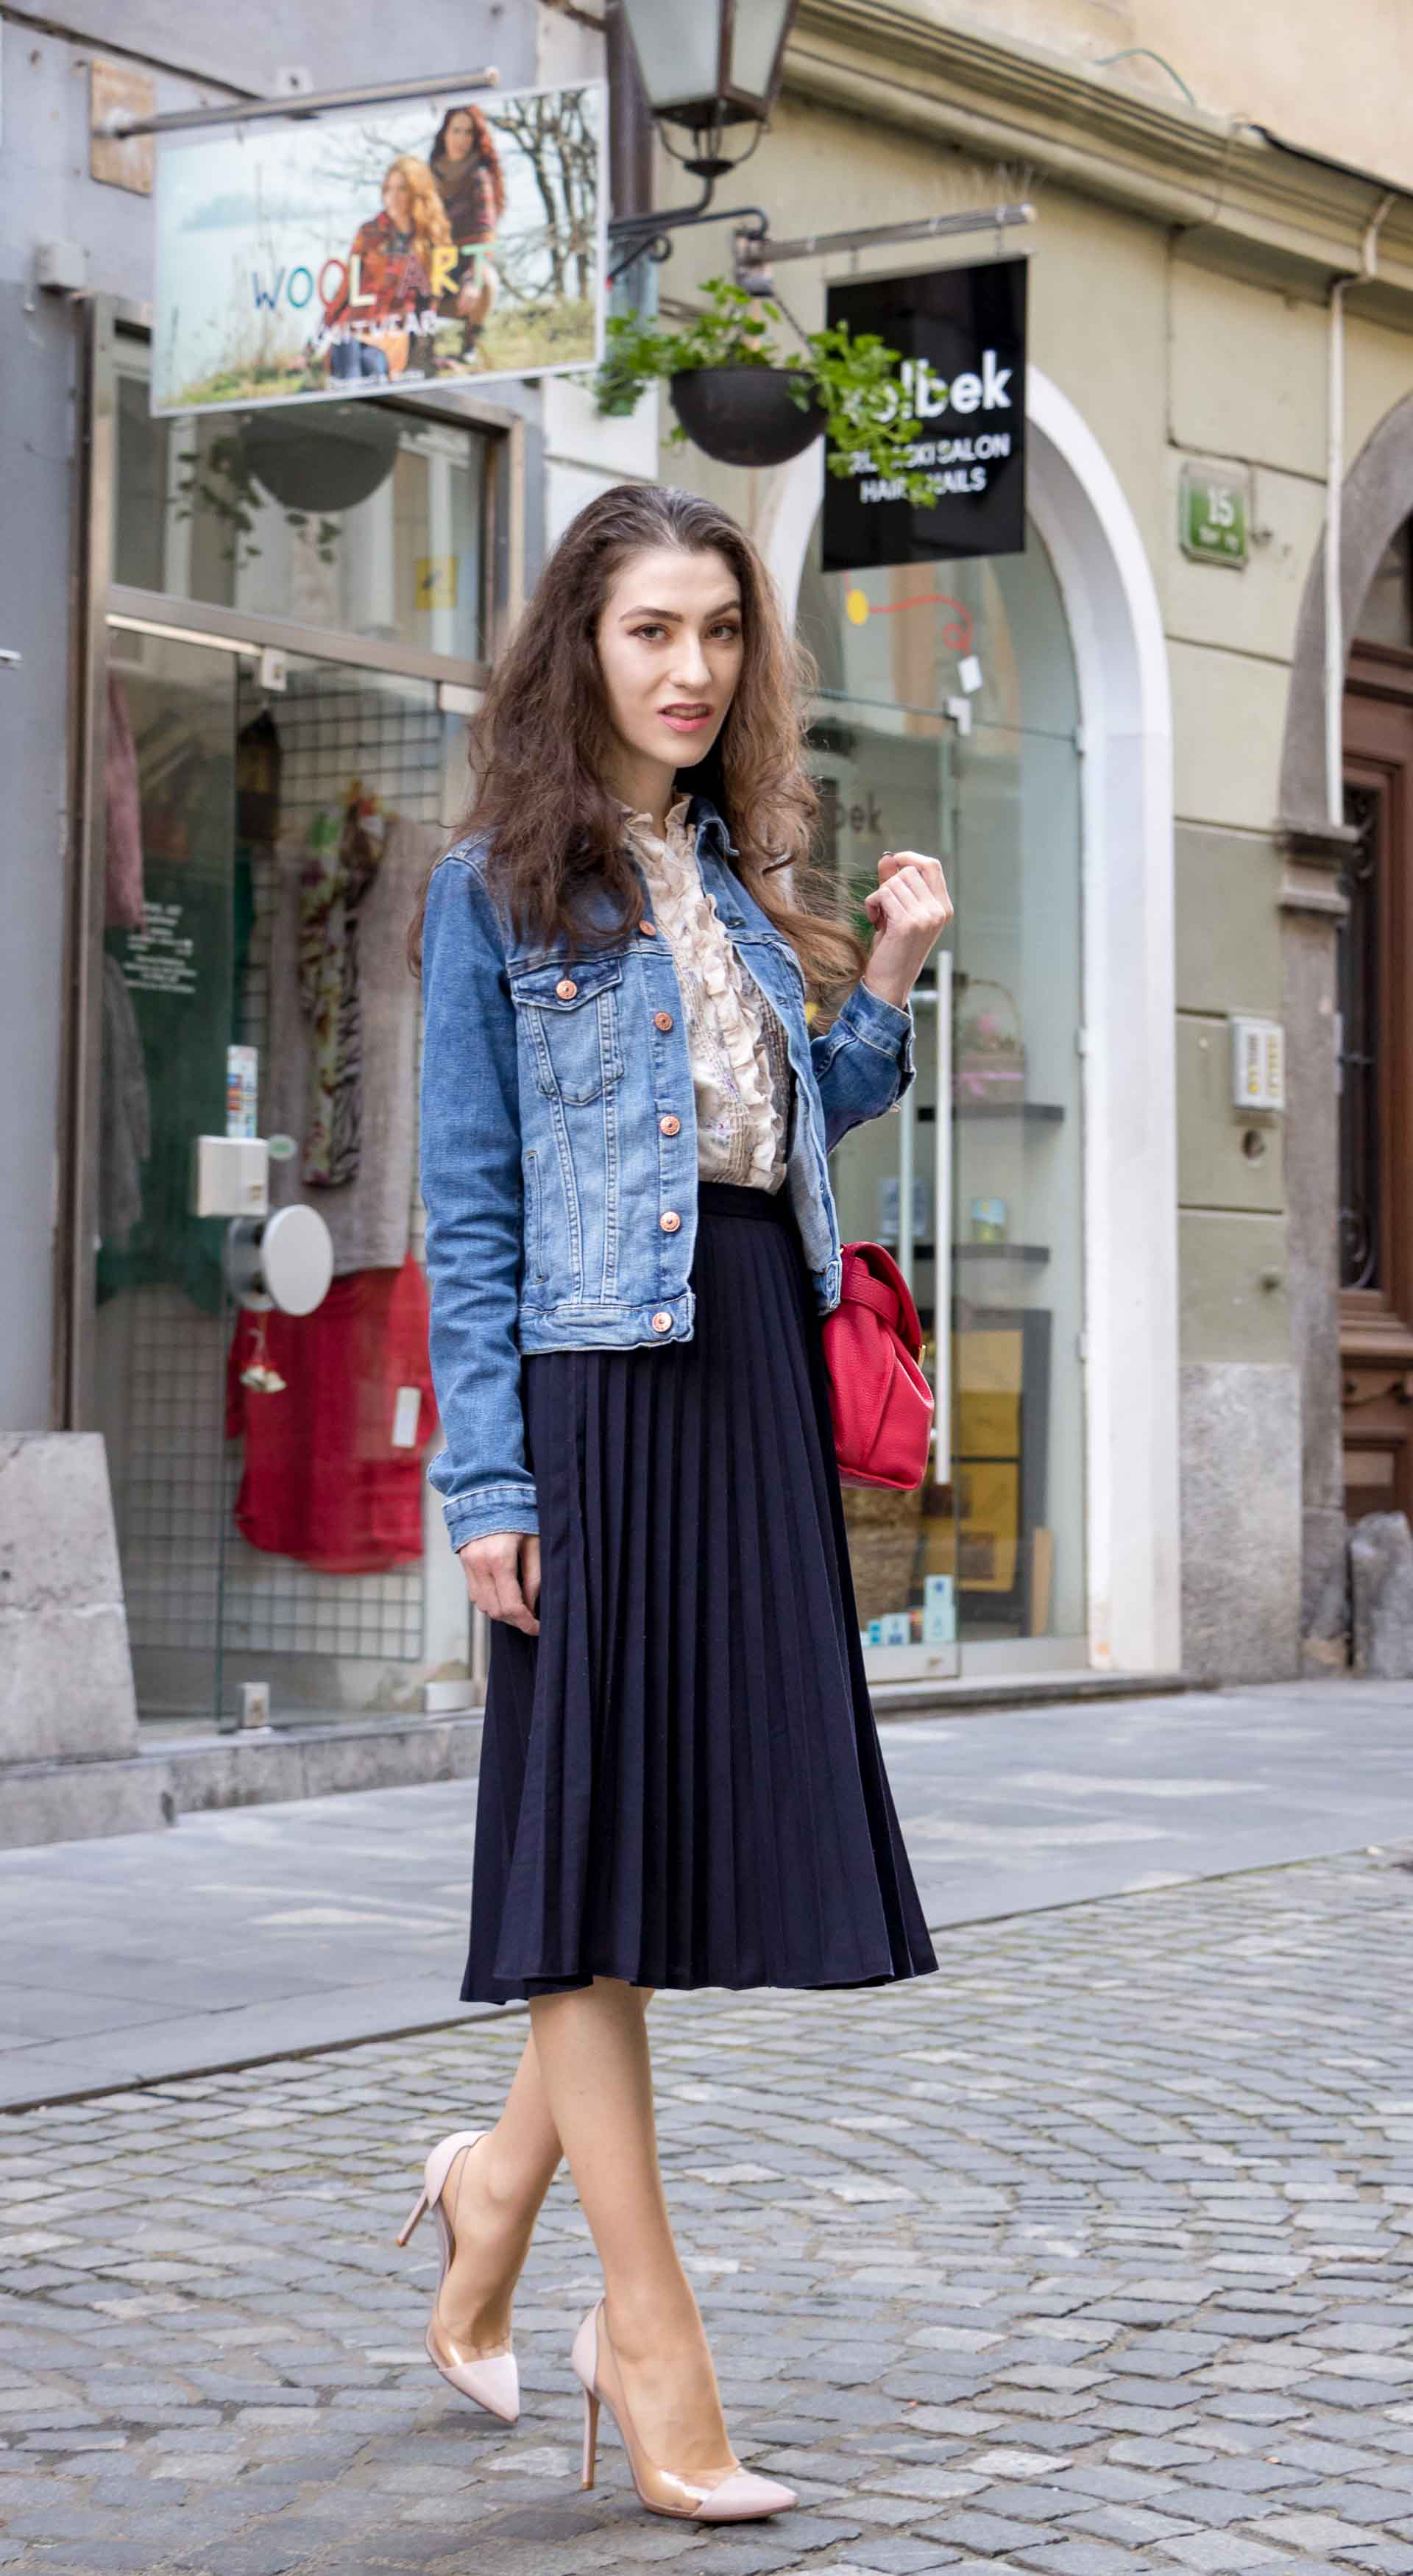 Veronika Lipar Fashion Blogger of Brunette from Wall Street dressed in H&M denim jacket, floral blouse, midi pleated skirt, Gianvito Rossi plexi pumps, pink top handle bag looking cool and elegant